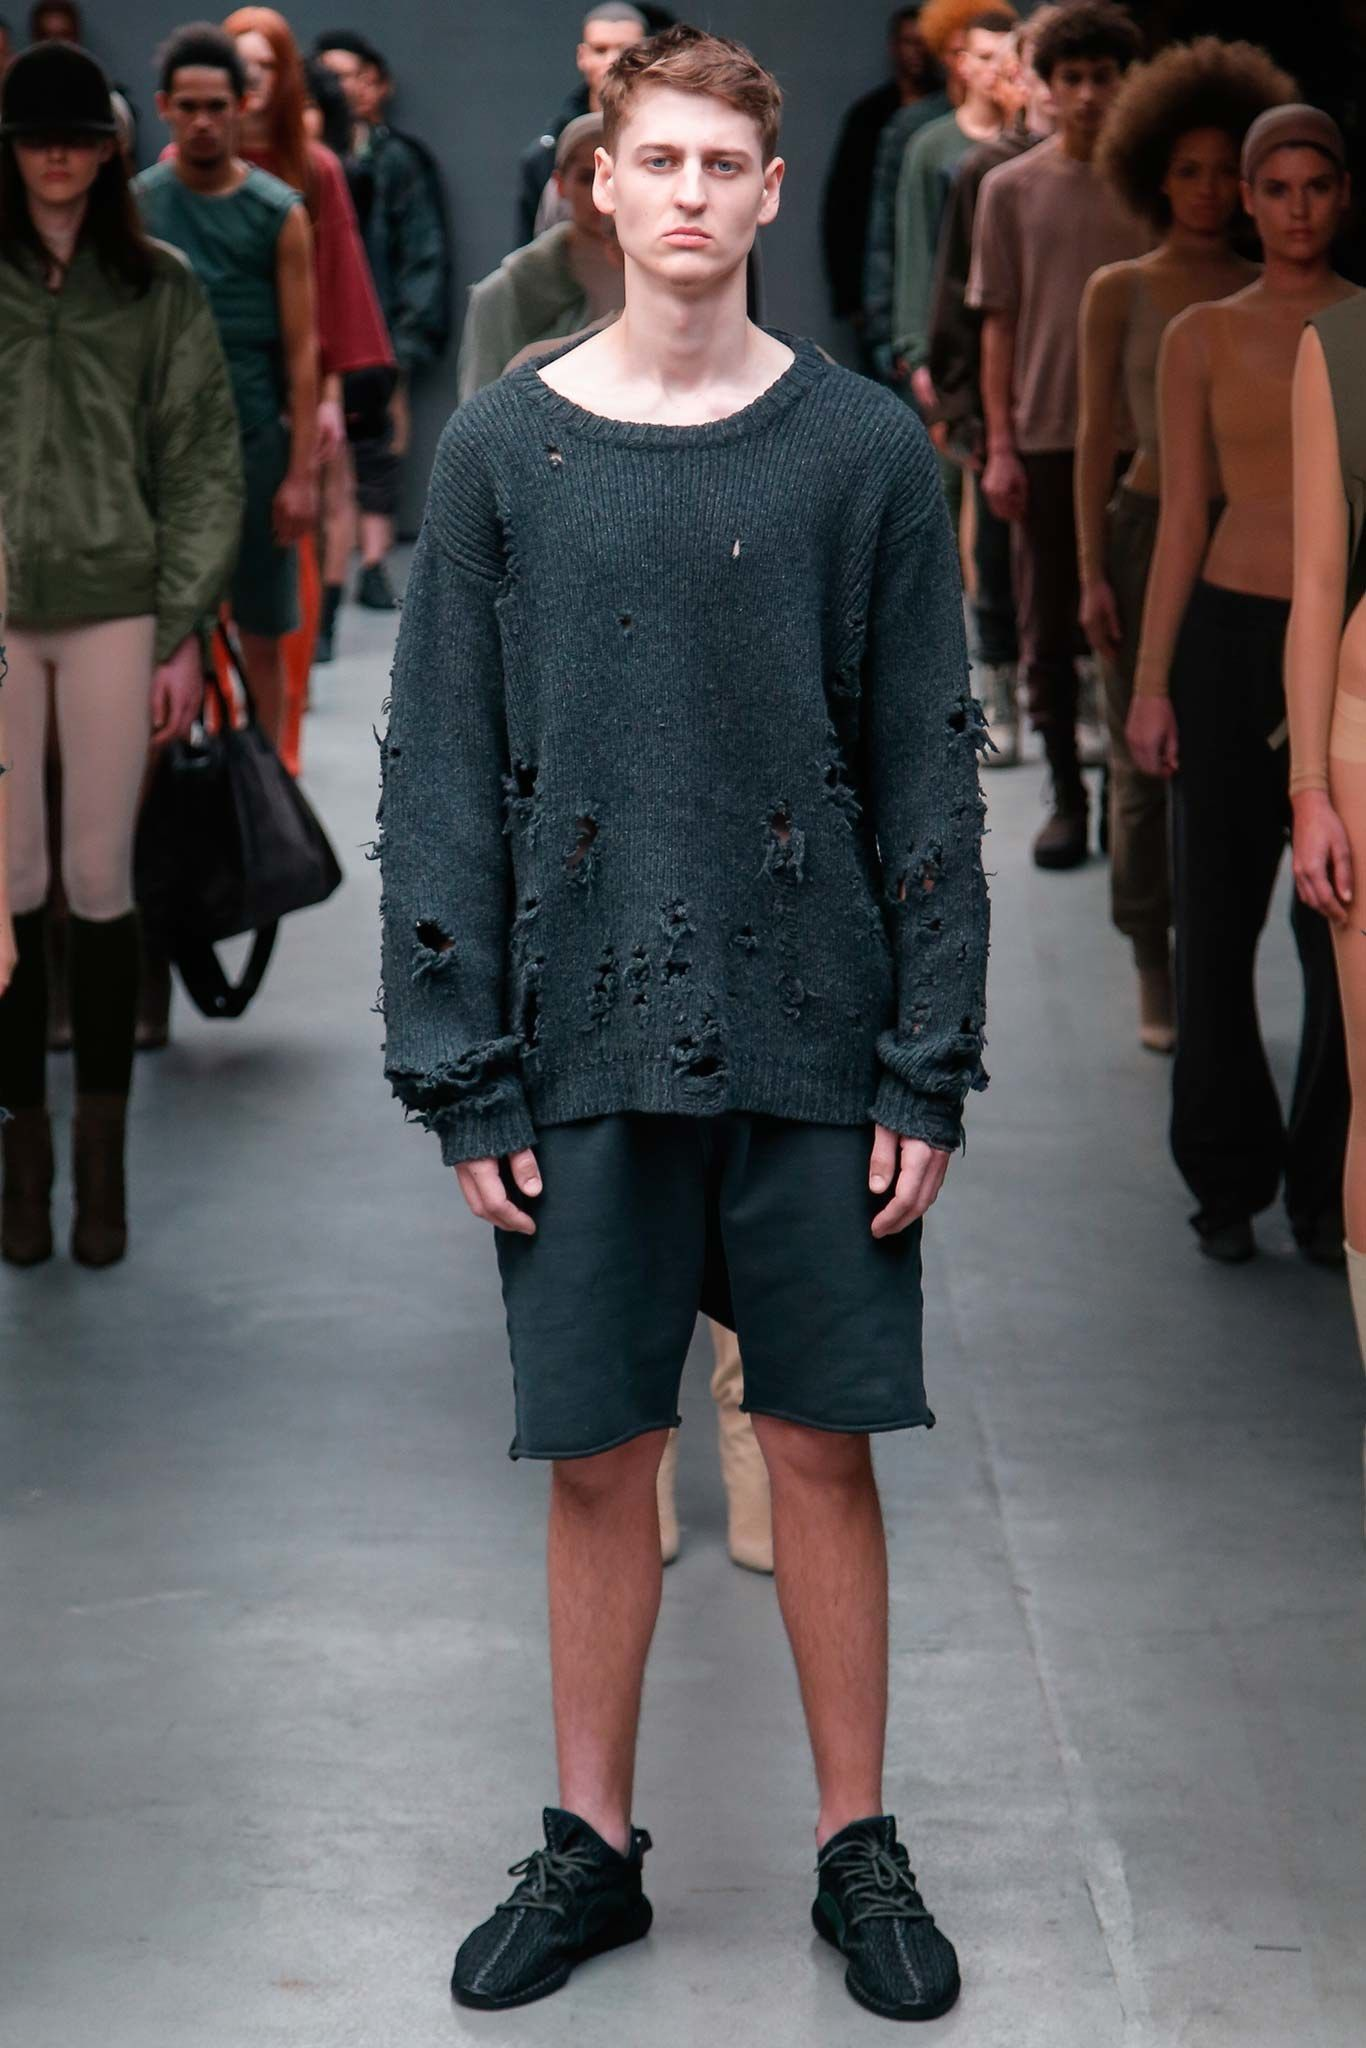 Yeezy Fall 2015 Ready To Wear Fashion Show Kanye West Street Styles Fur Herren Modestil